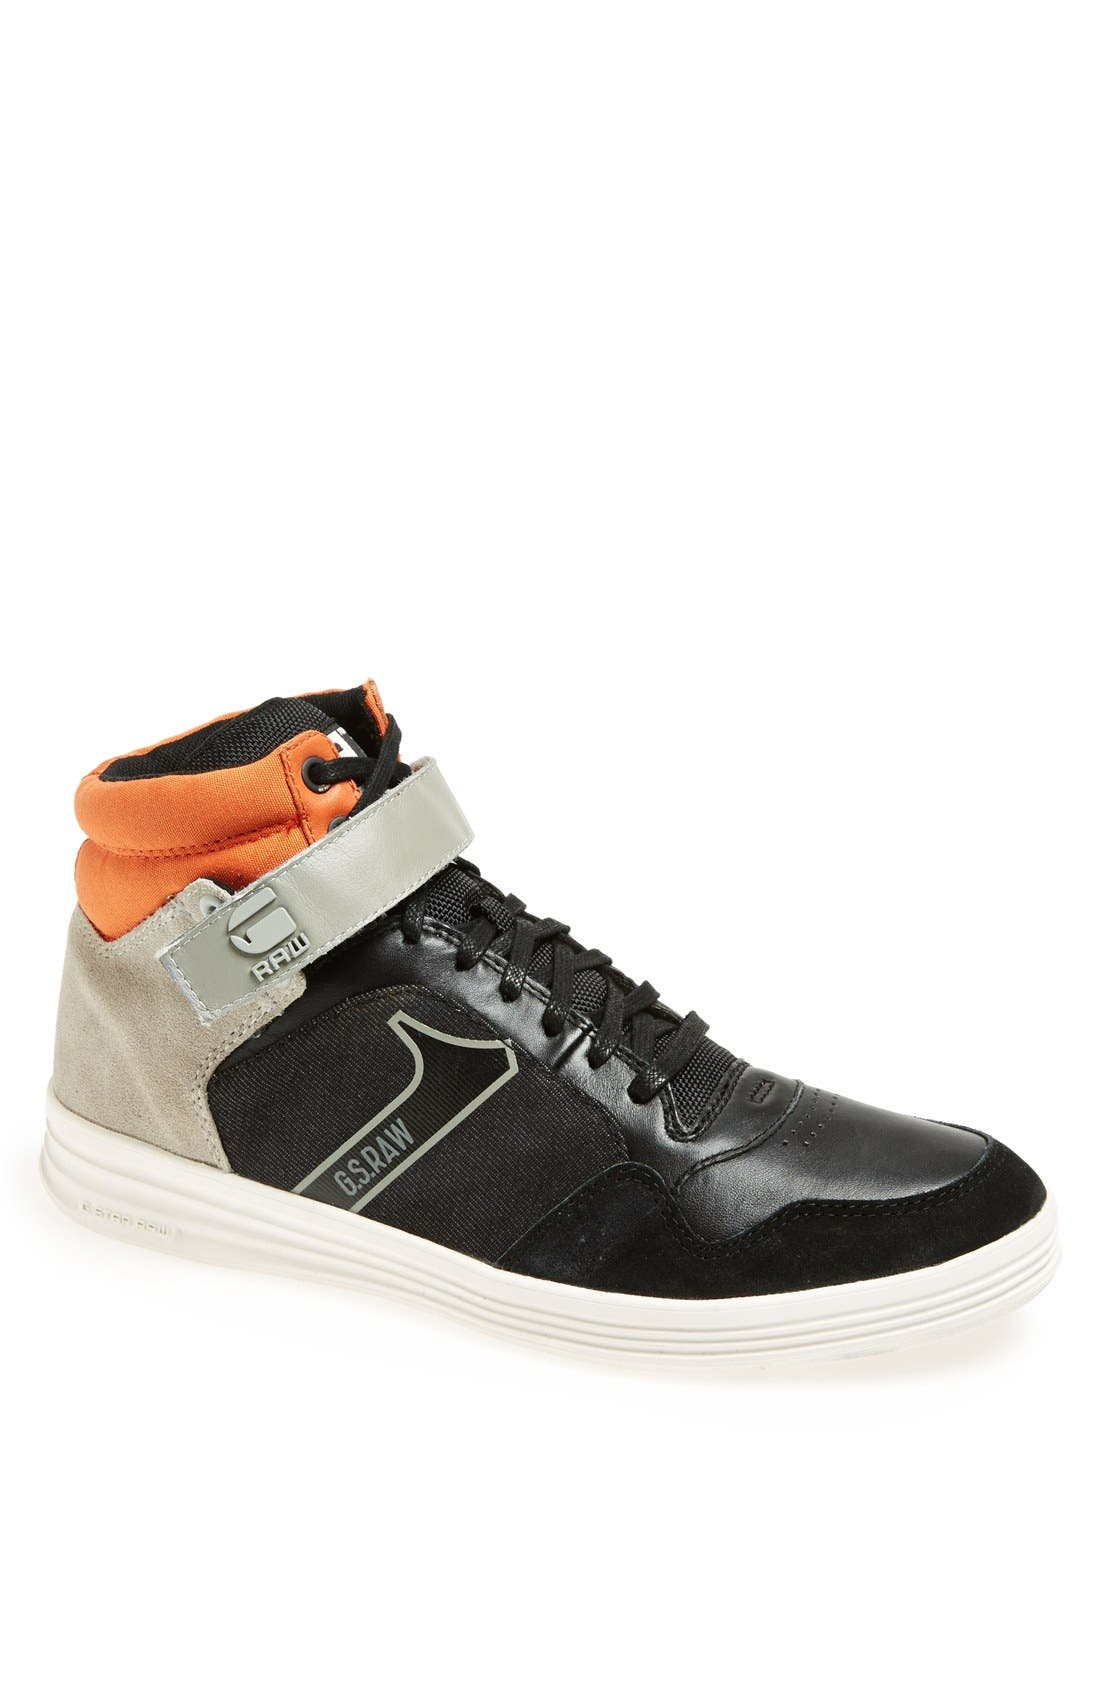 Alternate Image 1 Selected - G-Star Raw 'Futura Outland' Sneaker